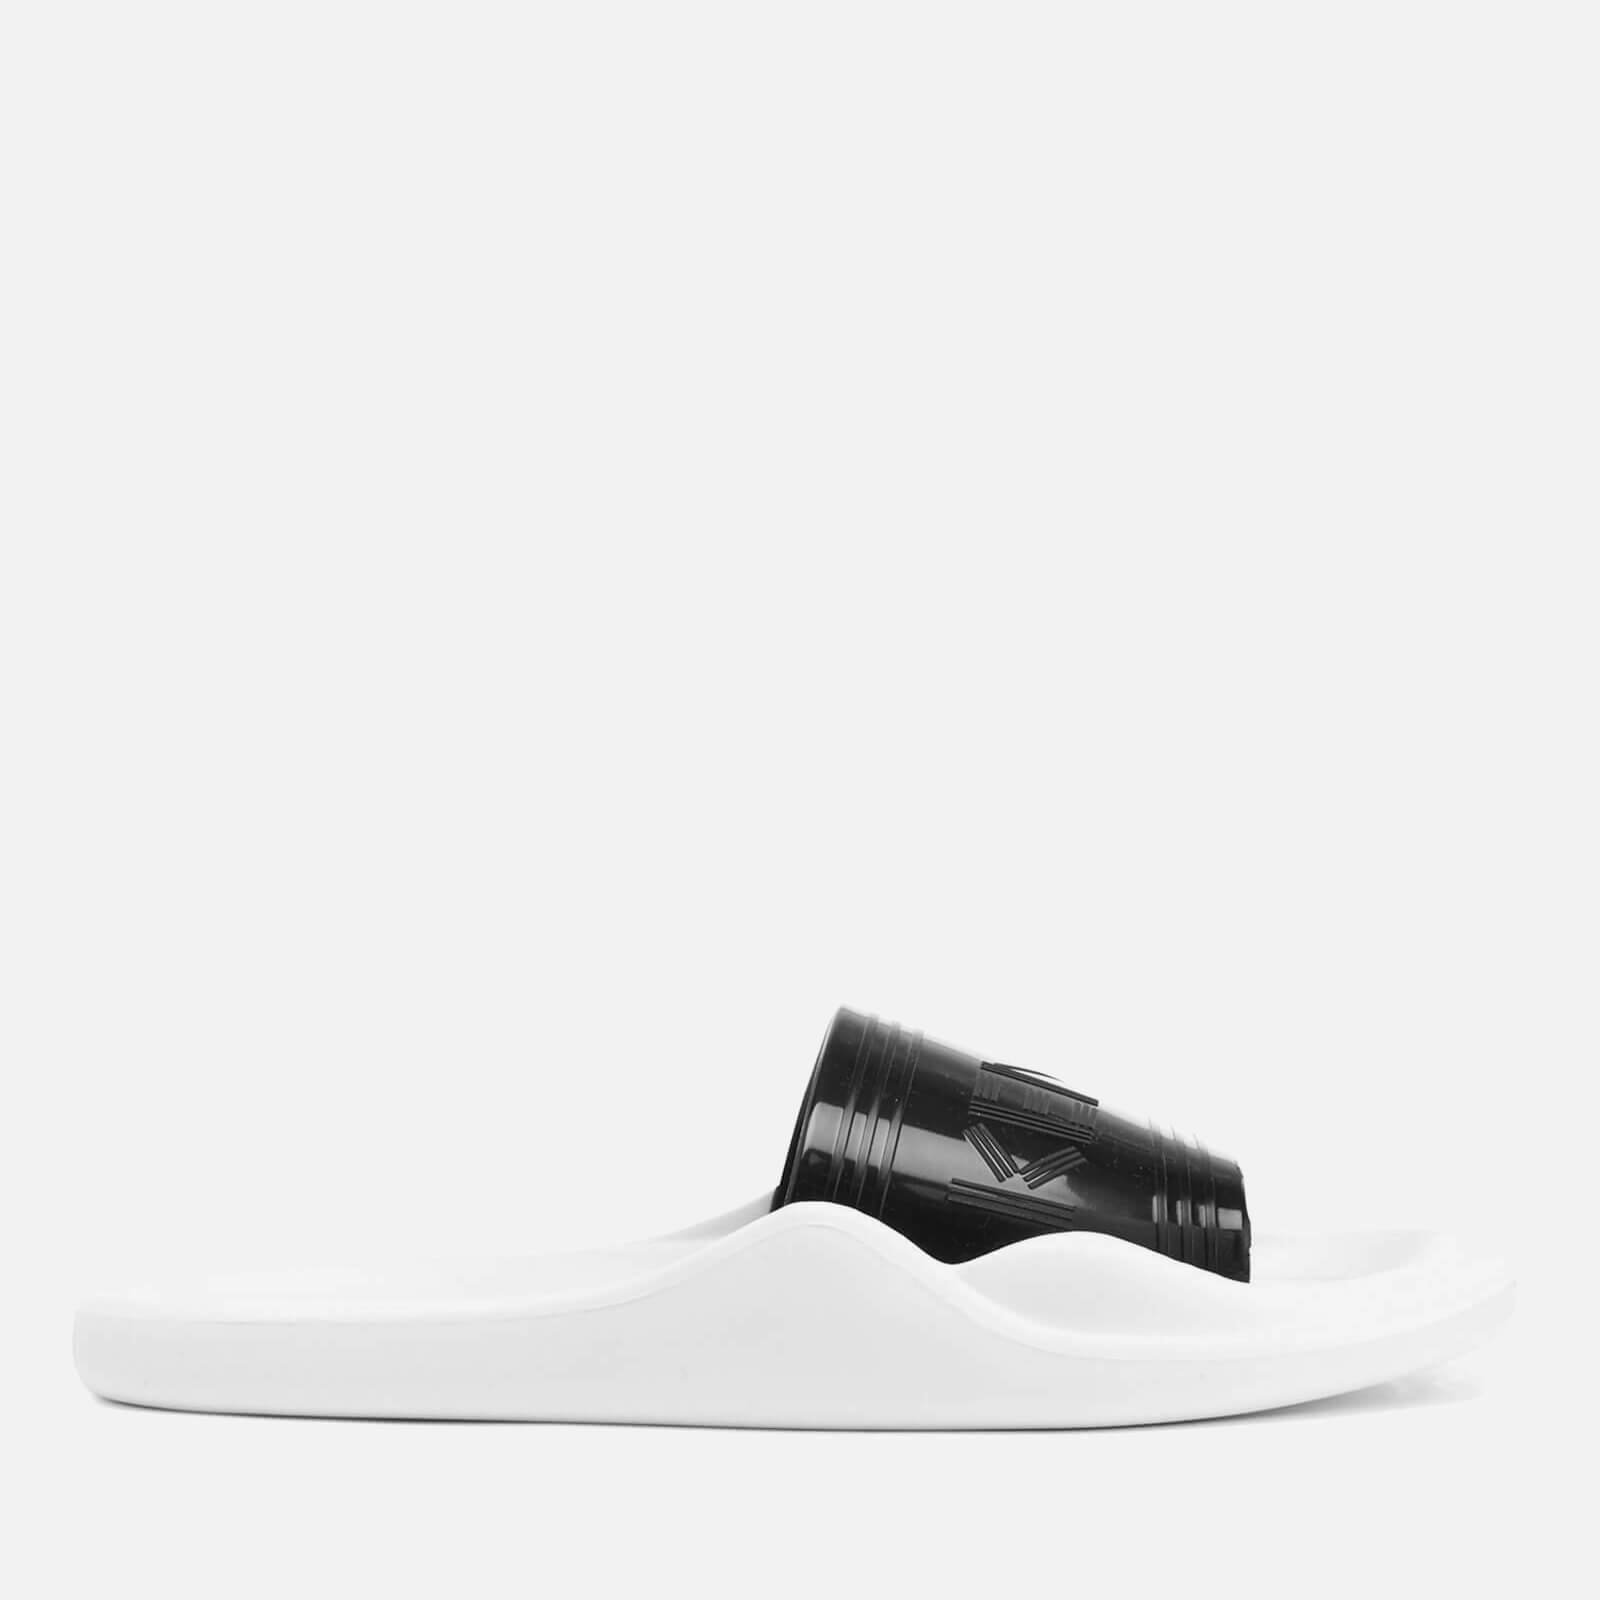 6eeb0d1a KENZO Women's Logo Pool Slide Sandals - Black - Free UK Delivery over £50